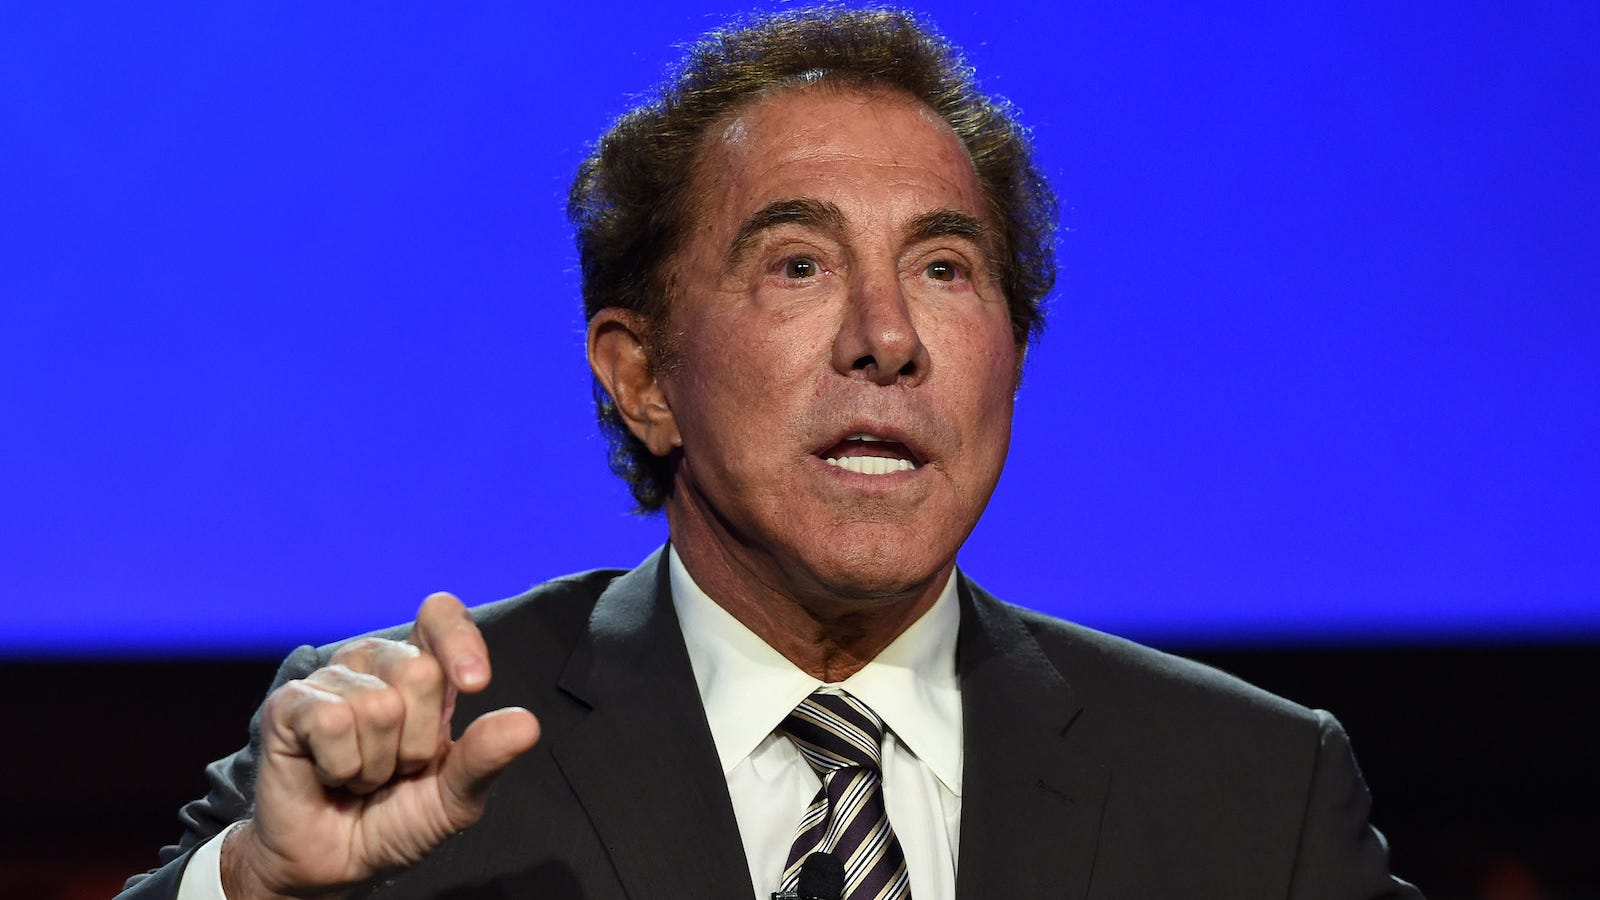 ifovocuotofsvgmtxomo - The Las Vegas Review-Journal Killed a Story 20 Years Ago About Steve Wynn Sexual Misconduct Claims